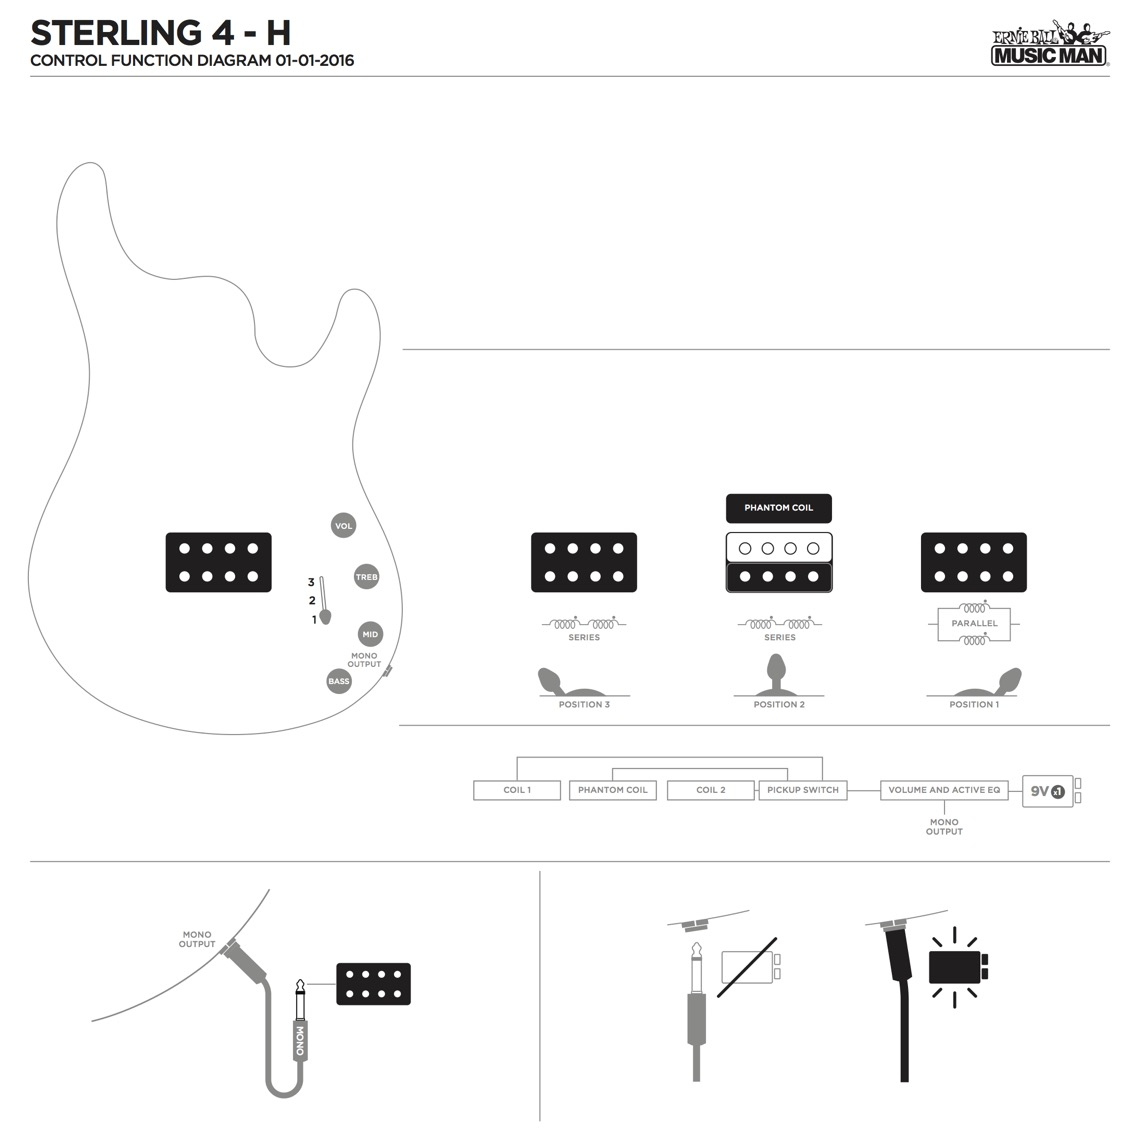 medium resolution of music man sterling hh wiring diagram best wiring diagram music man sterling hh wiring diagram